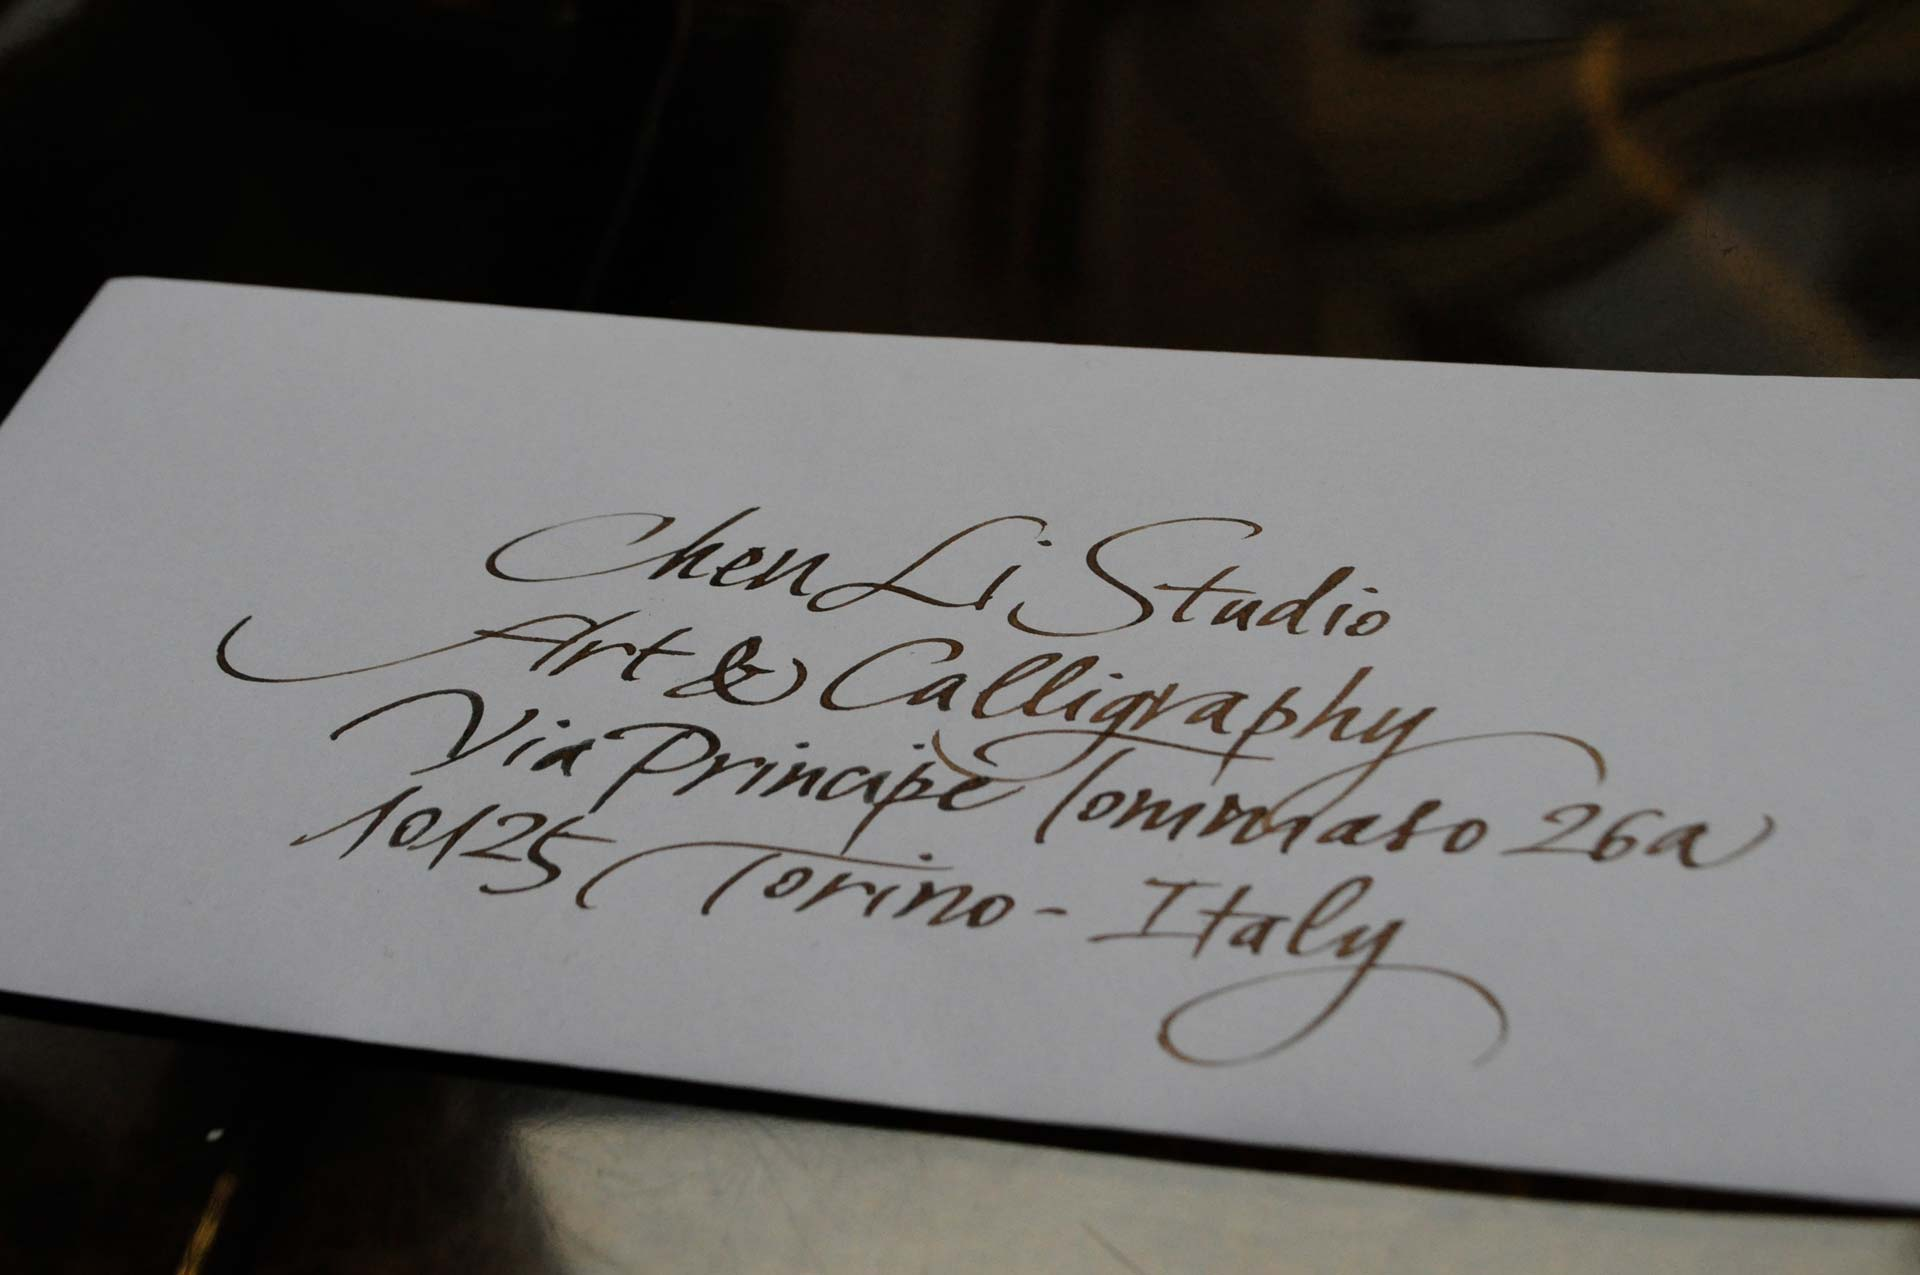 calligraphic address for envelopes in a classical handwriting in brown ink and pen by Chen Li